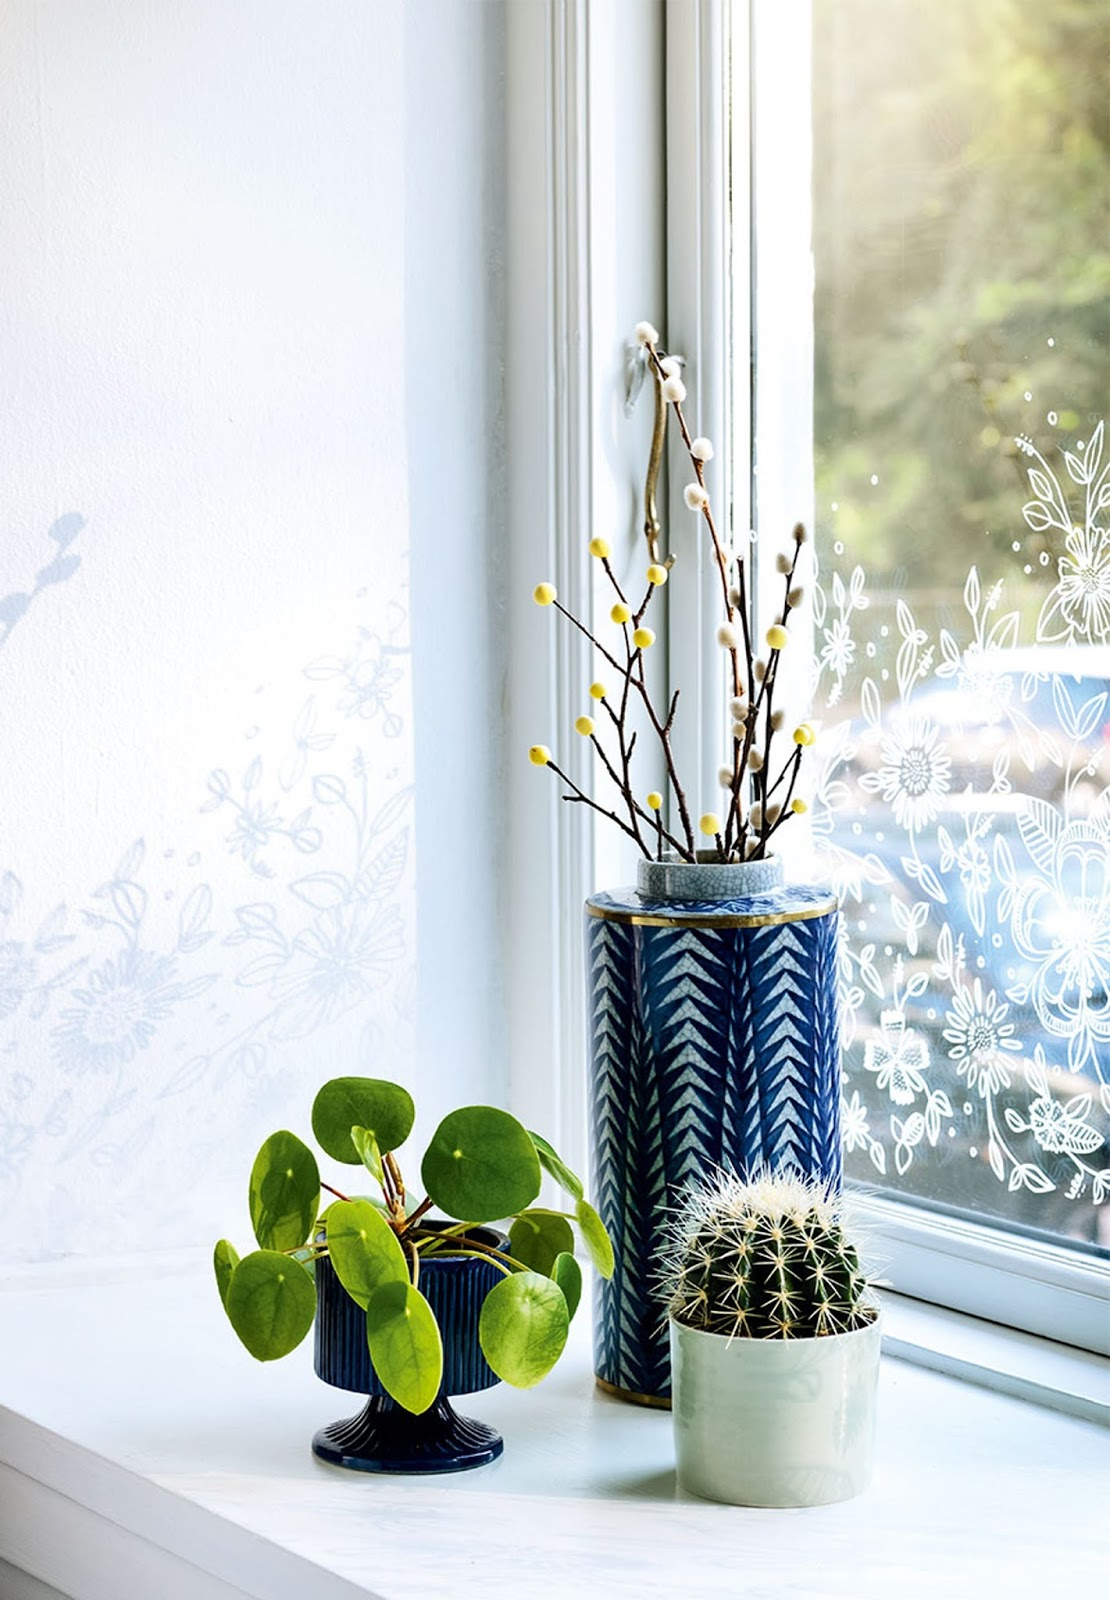 window plants, cactus, planter